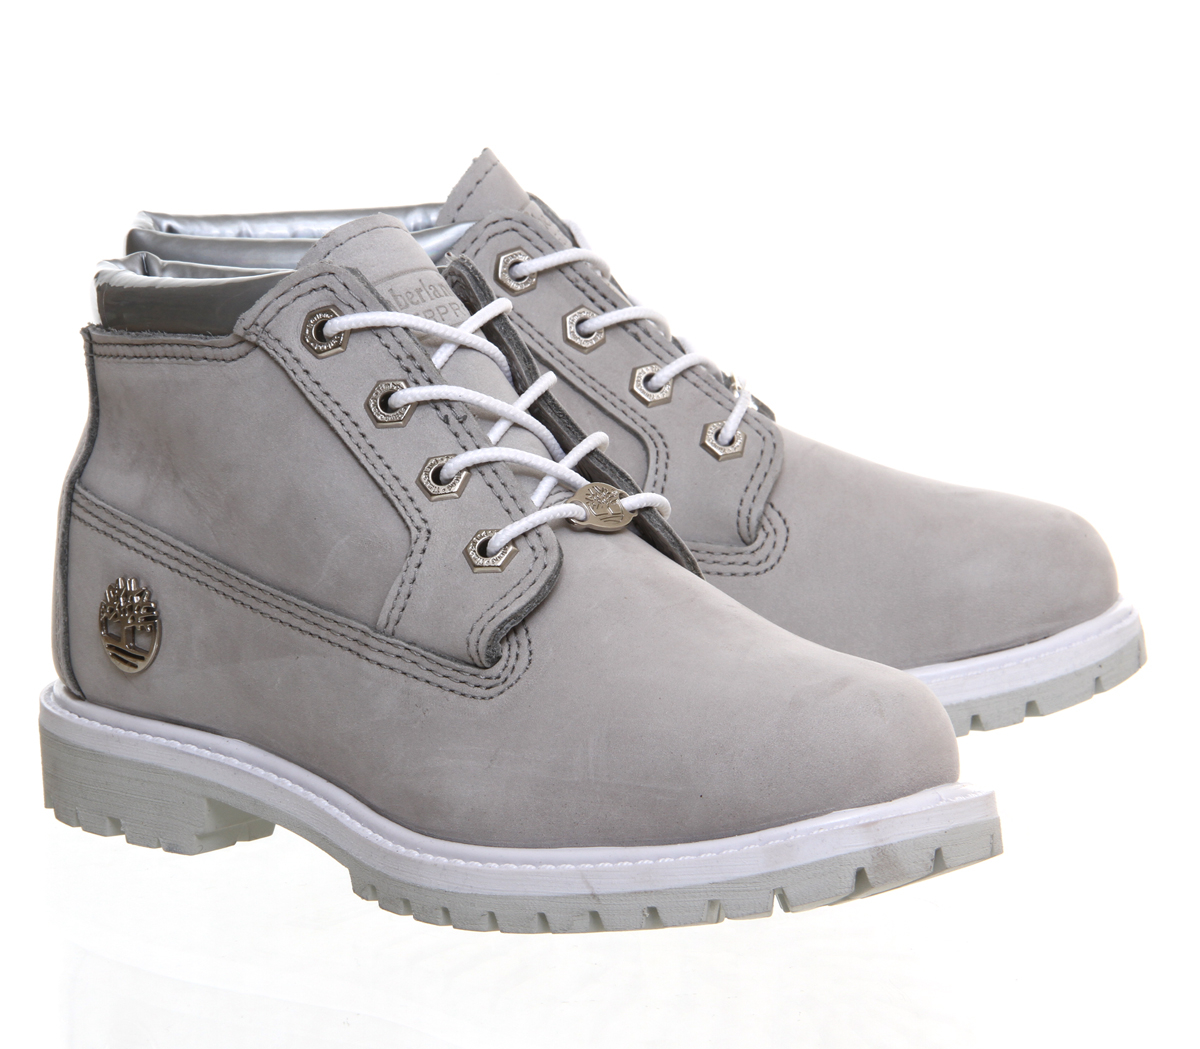 timberland nellie chukka double waterproof boots in gray. Black Bedroom Furniture Sets. Home Design Ideas